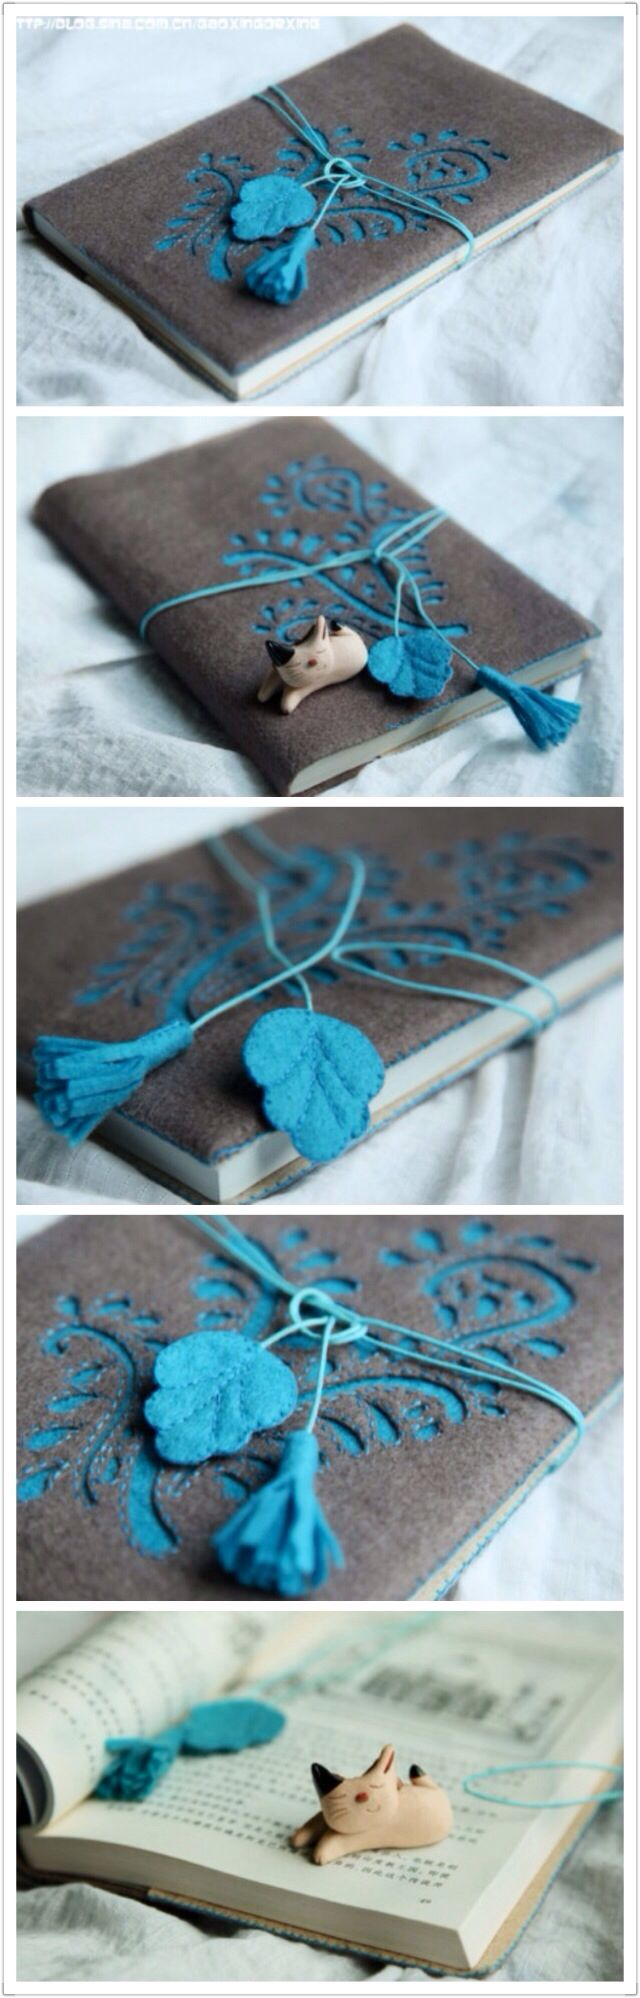 DIY book cover.. without the cat thing..